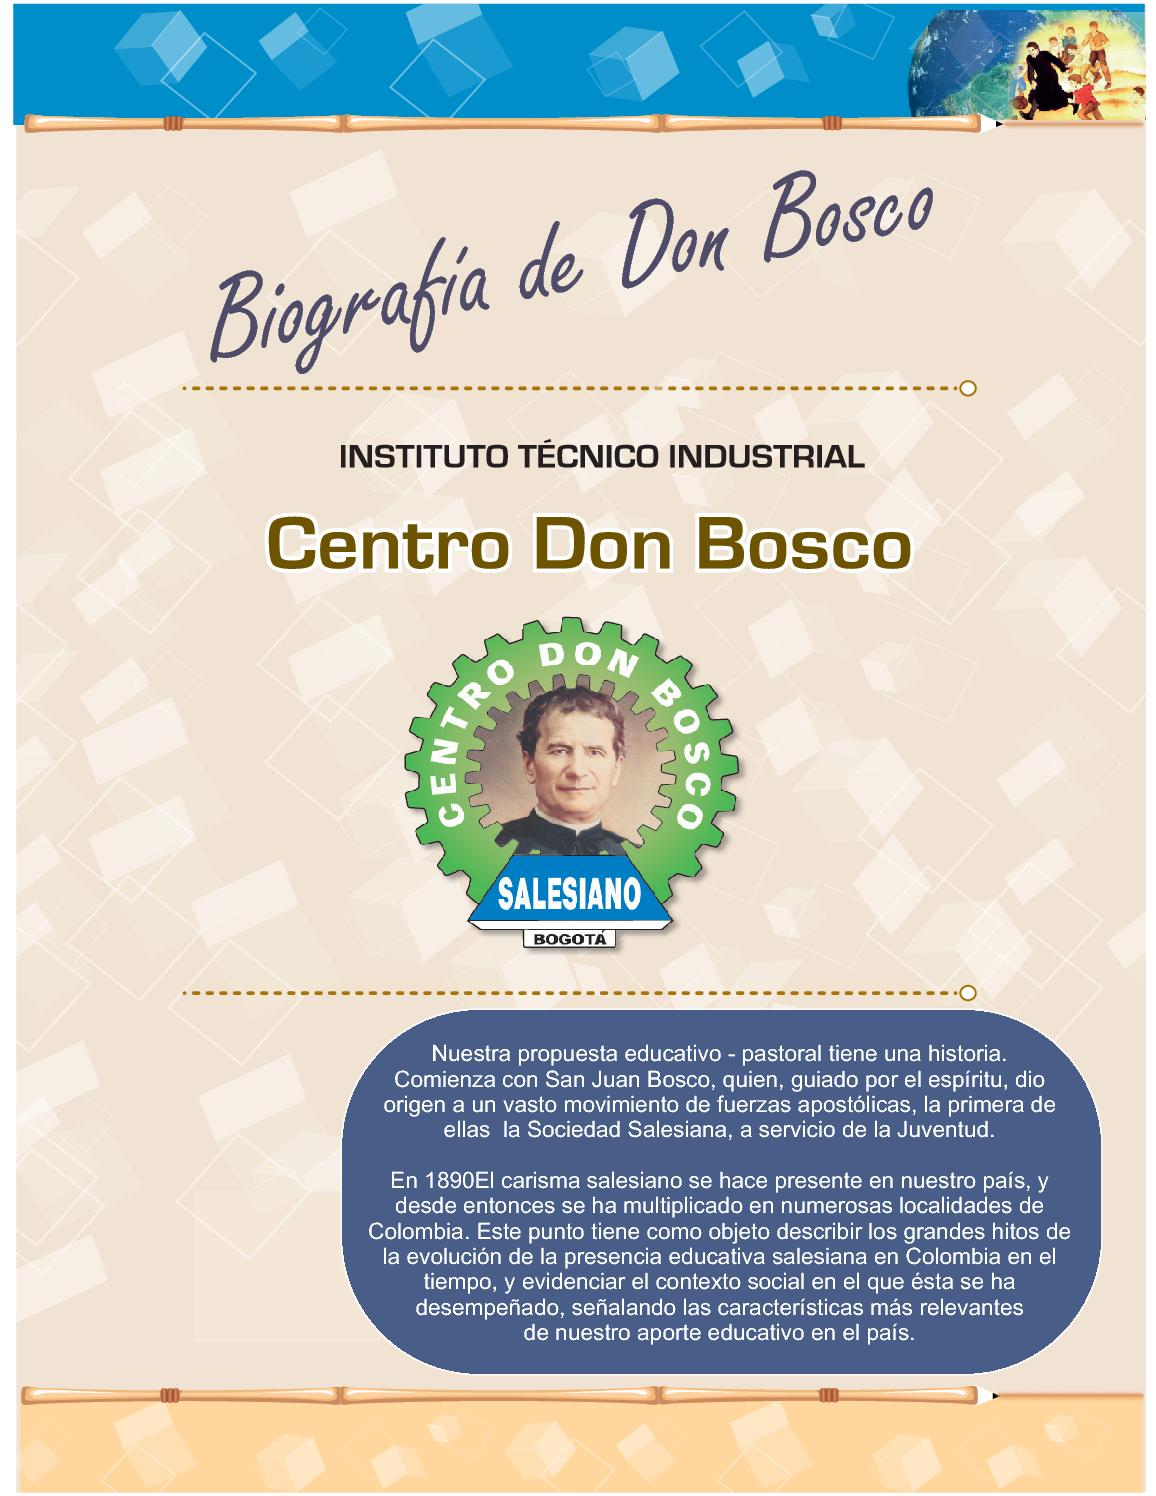 Libros De Don Bosco Biografía De Don Bosco By Centro Don Bosco Issuu